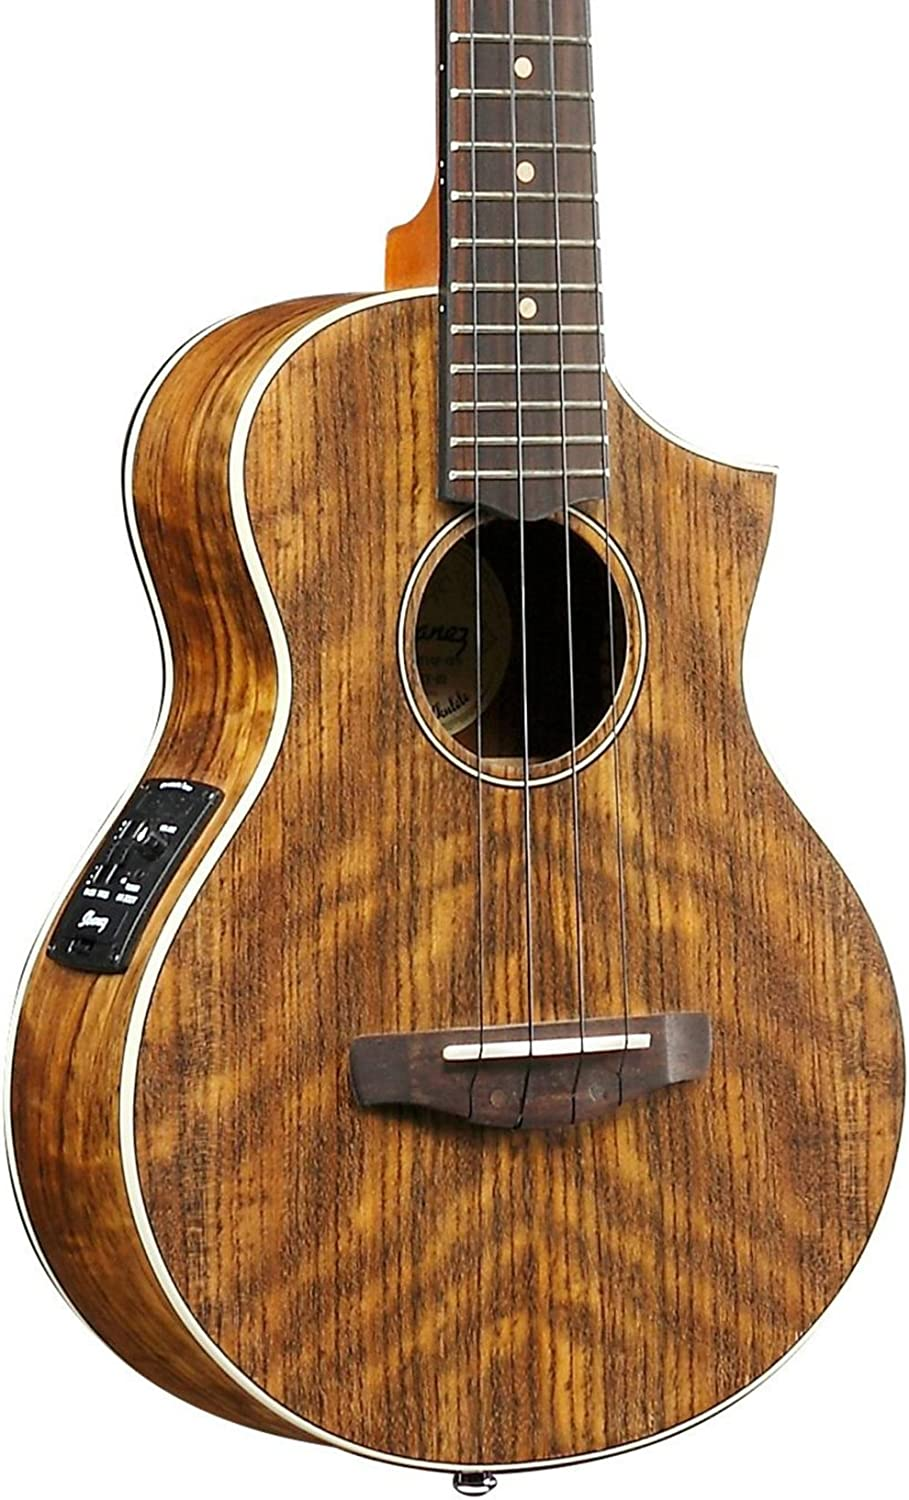 Ibanez 4-String Ukulele Max 83% OFF Right New Shipping Free UEWT14E Natural Pore Open